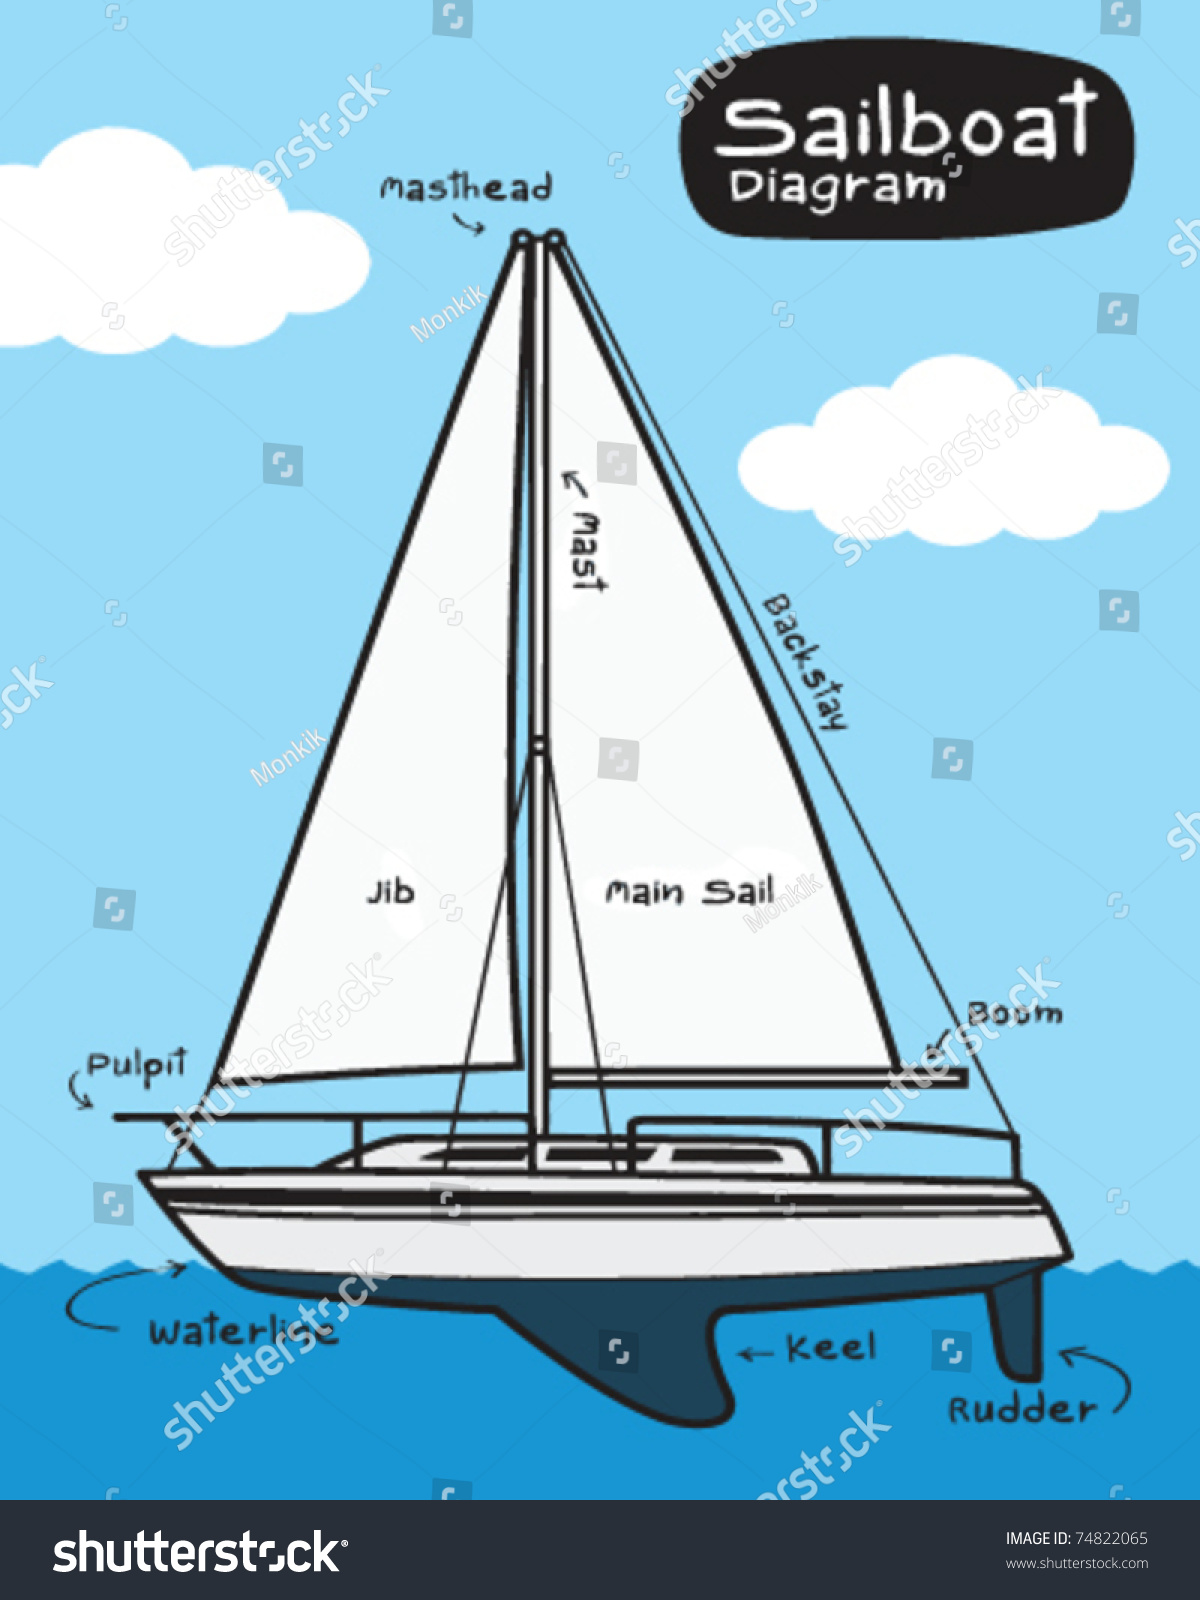 hight resolution of sailboat diagram stock vector royalty free 74822065sailboat diagram 10